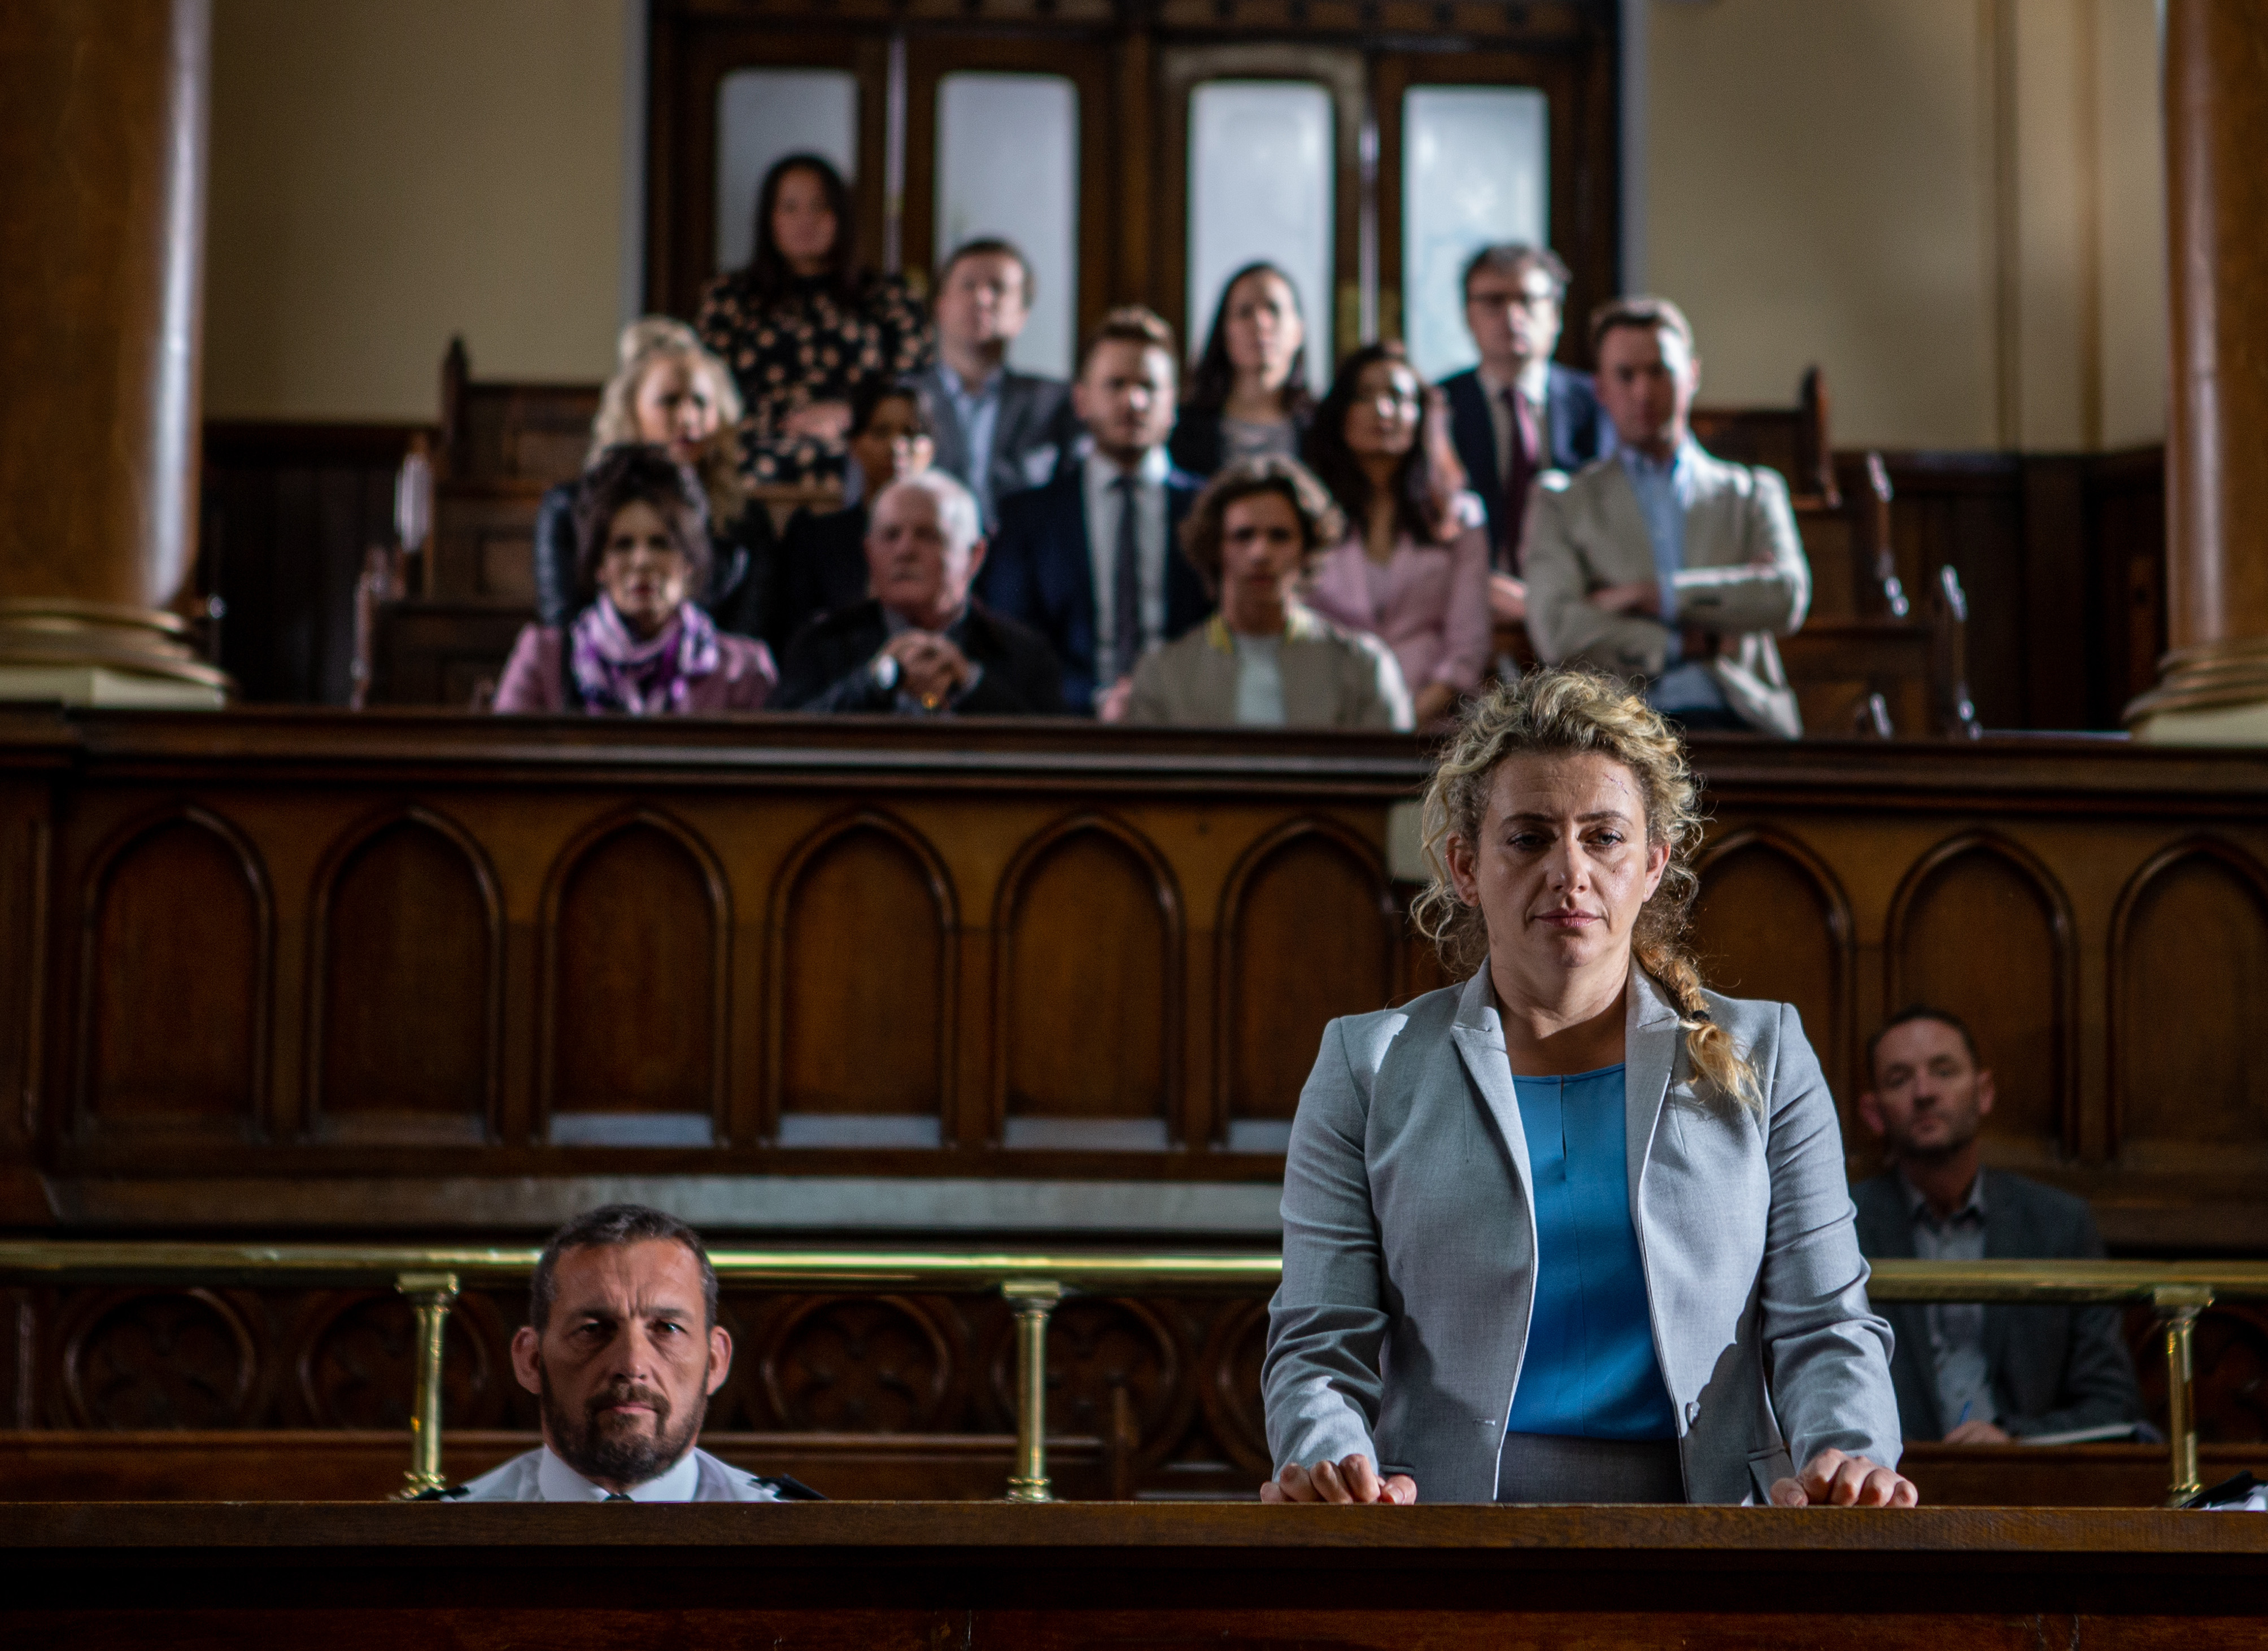 20_06_emm_maya_court_04-f015 10 Emmerdale spoilers: Maya shock exit, child death danger and Pete cheats with Kim?